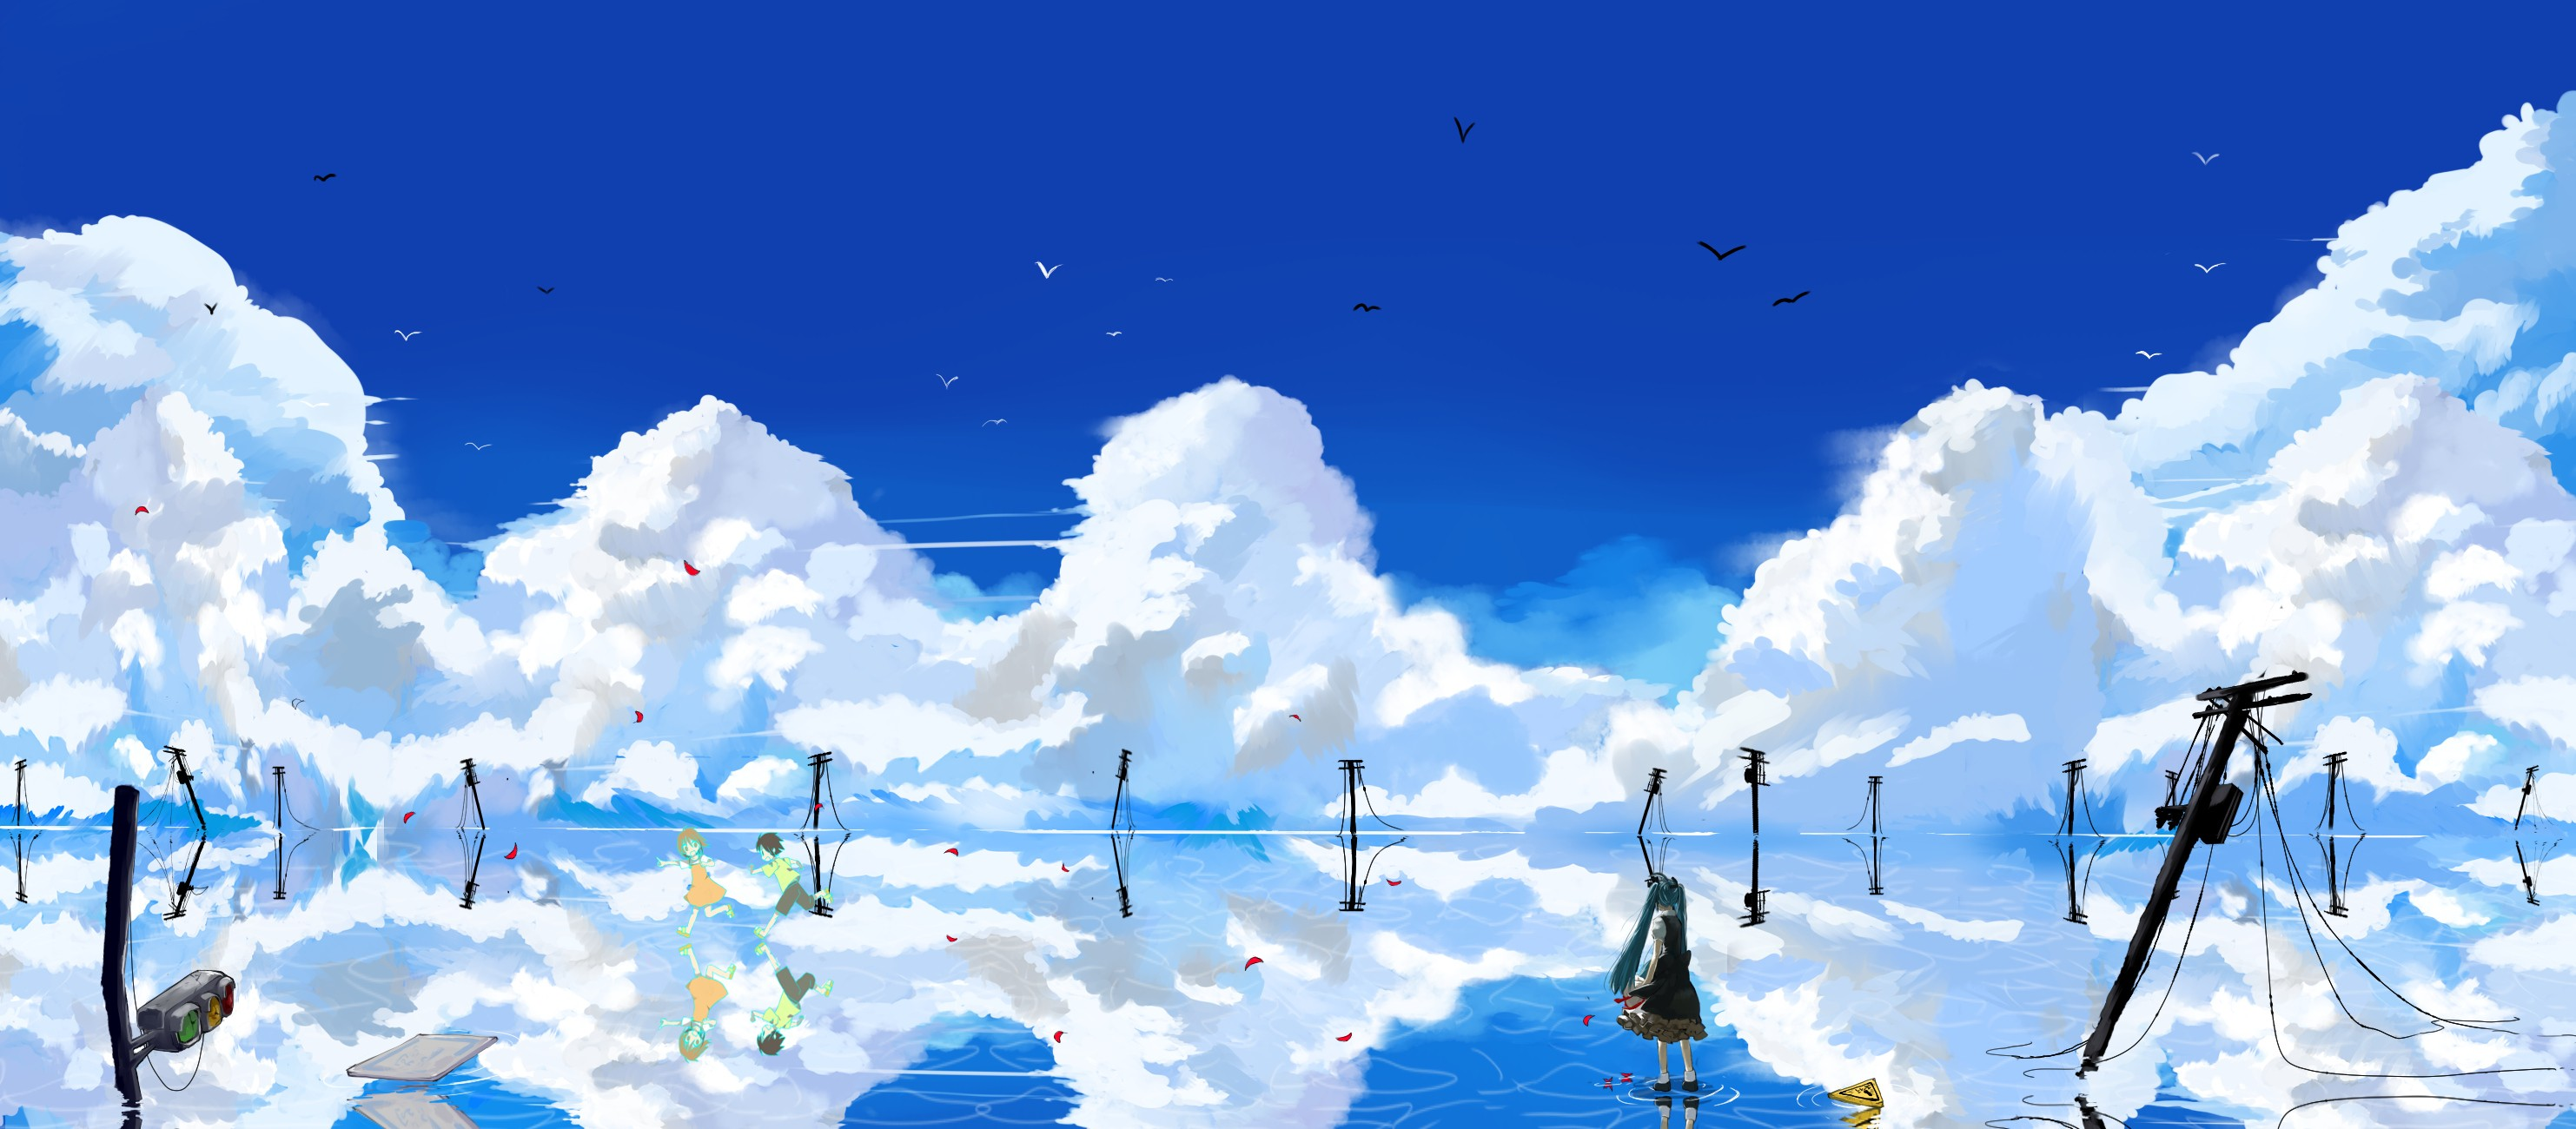 1 sky blue hd wallpapers backgrounds wallpaper abyss - Blue anime wallpaper ...